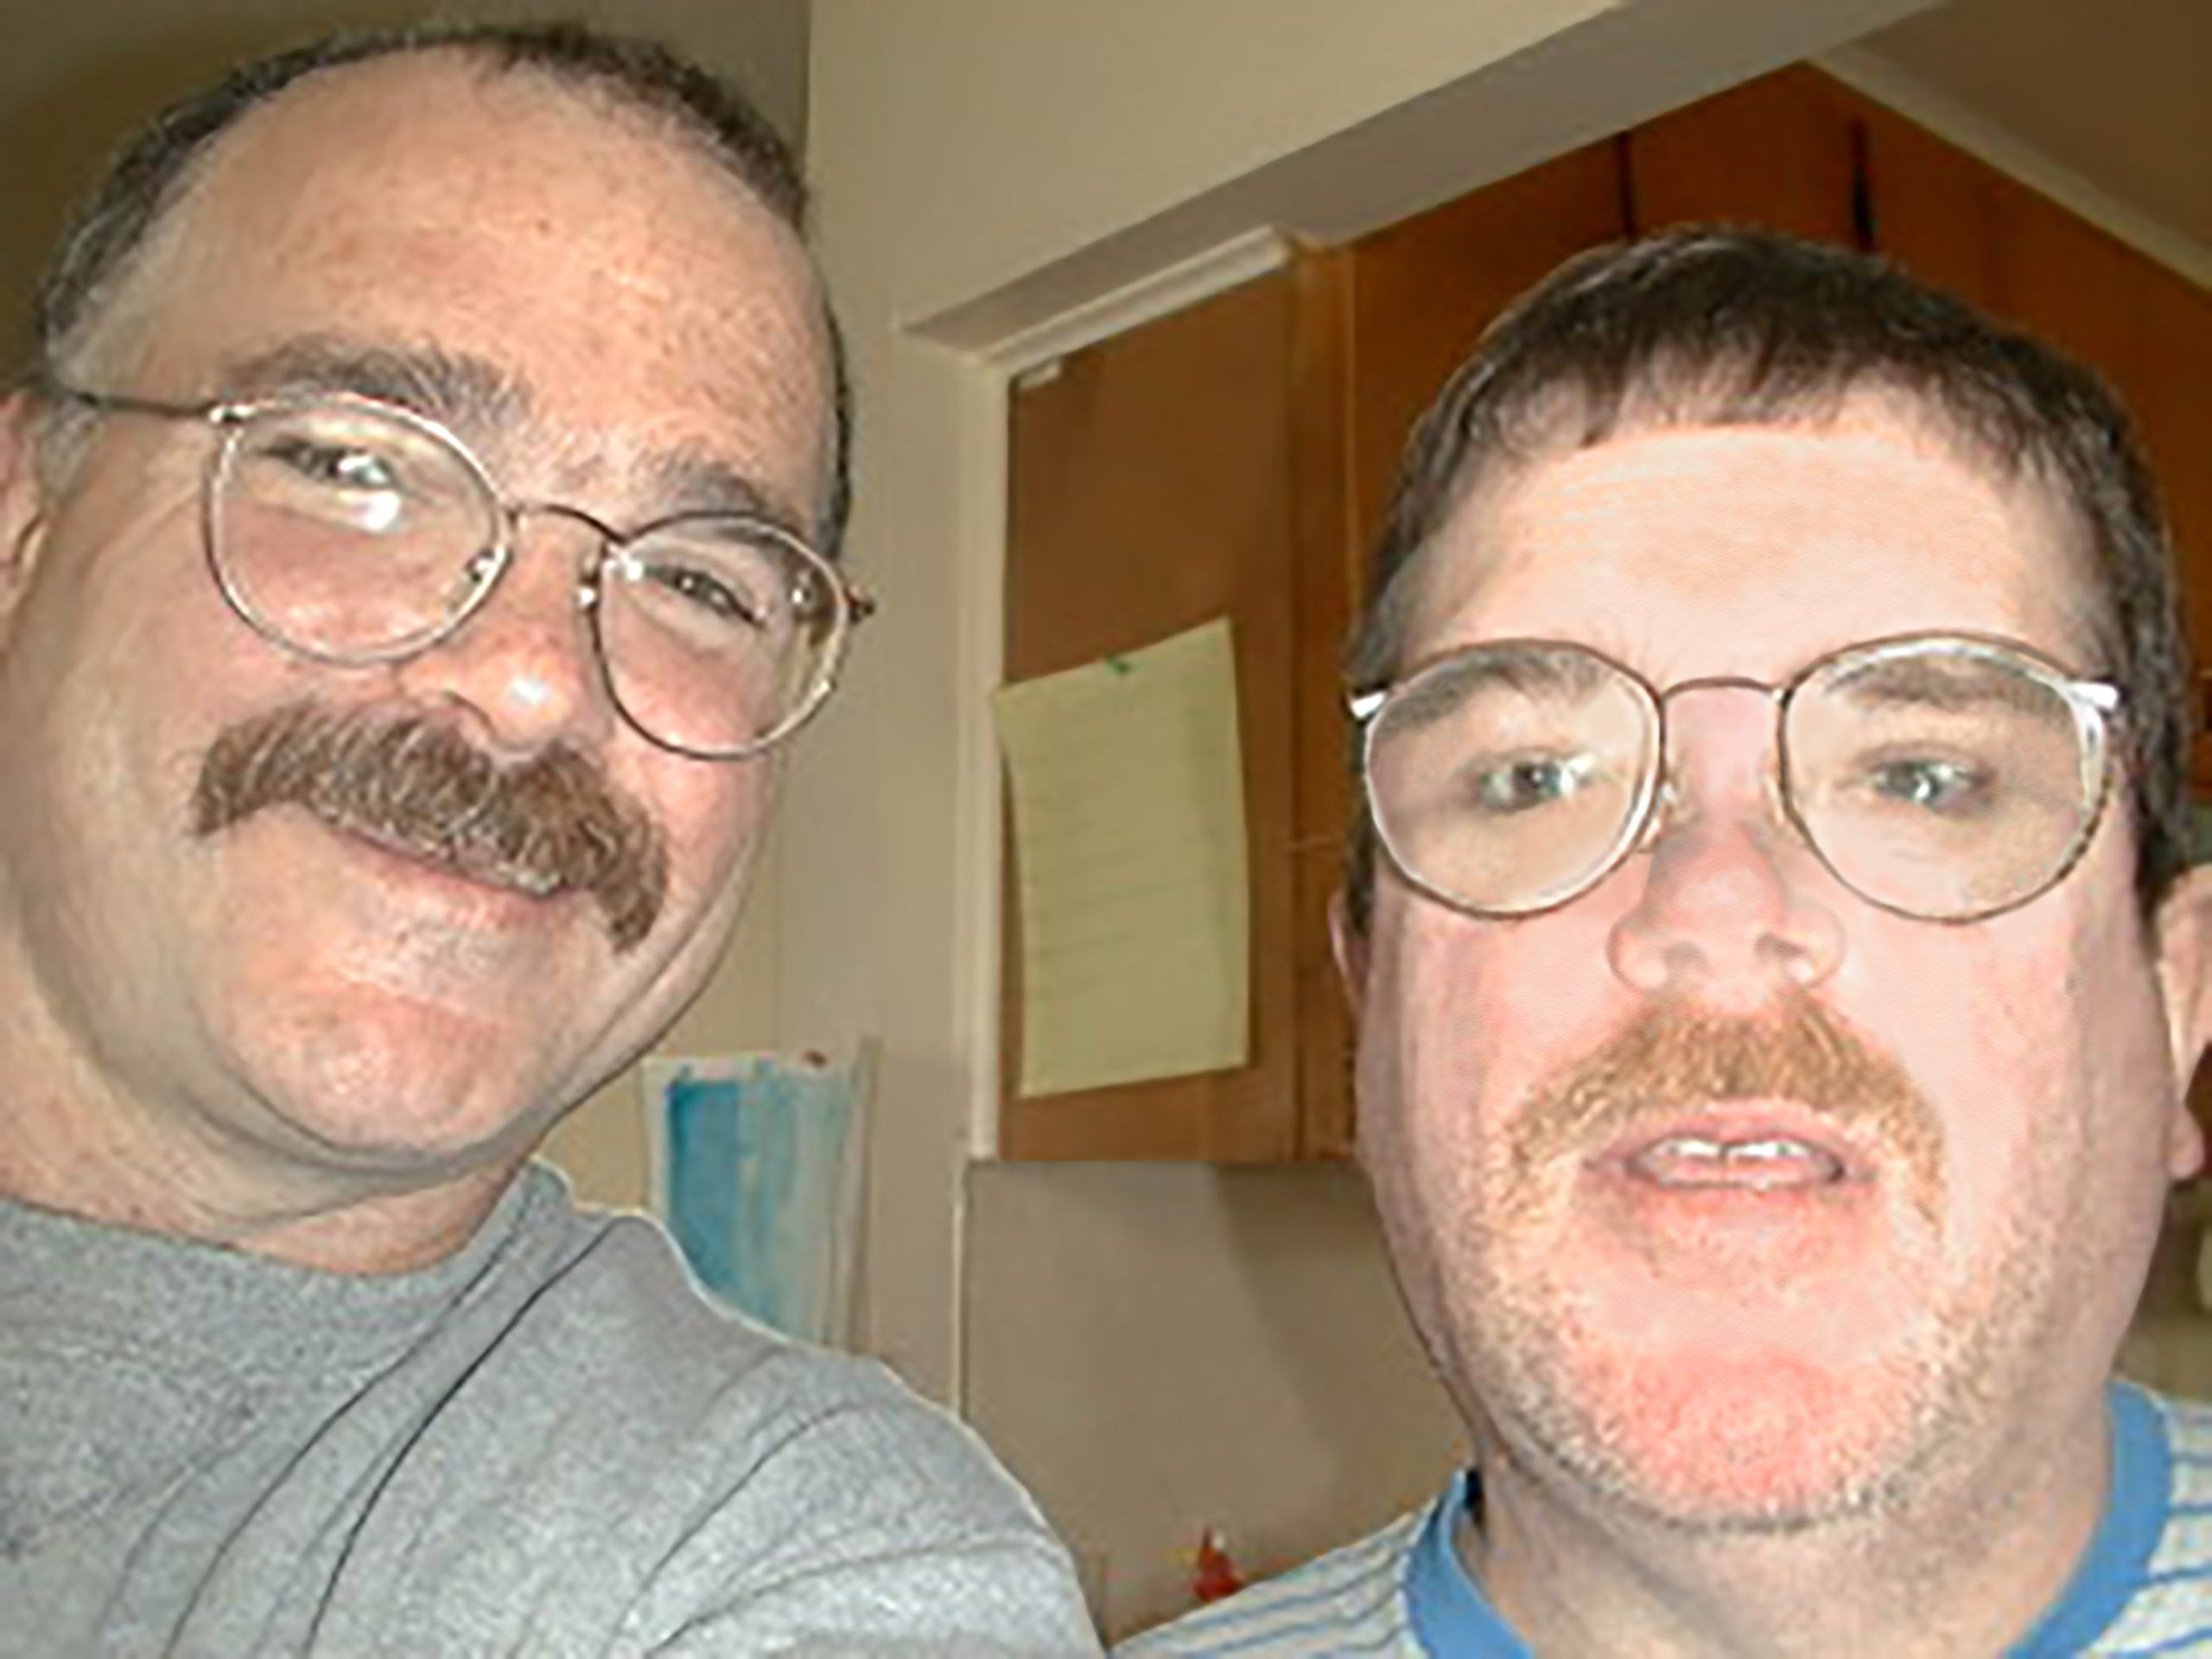 Tom and his Brother, James, who had Autism